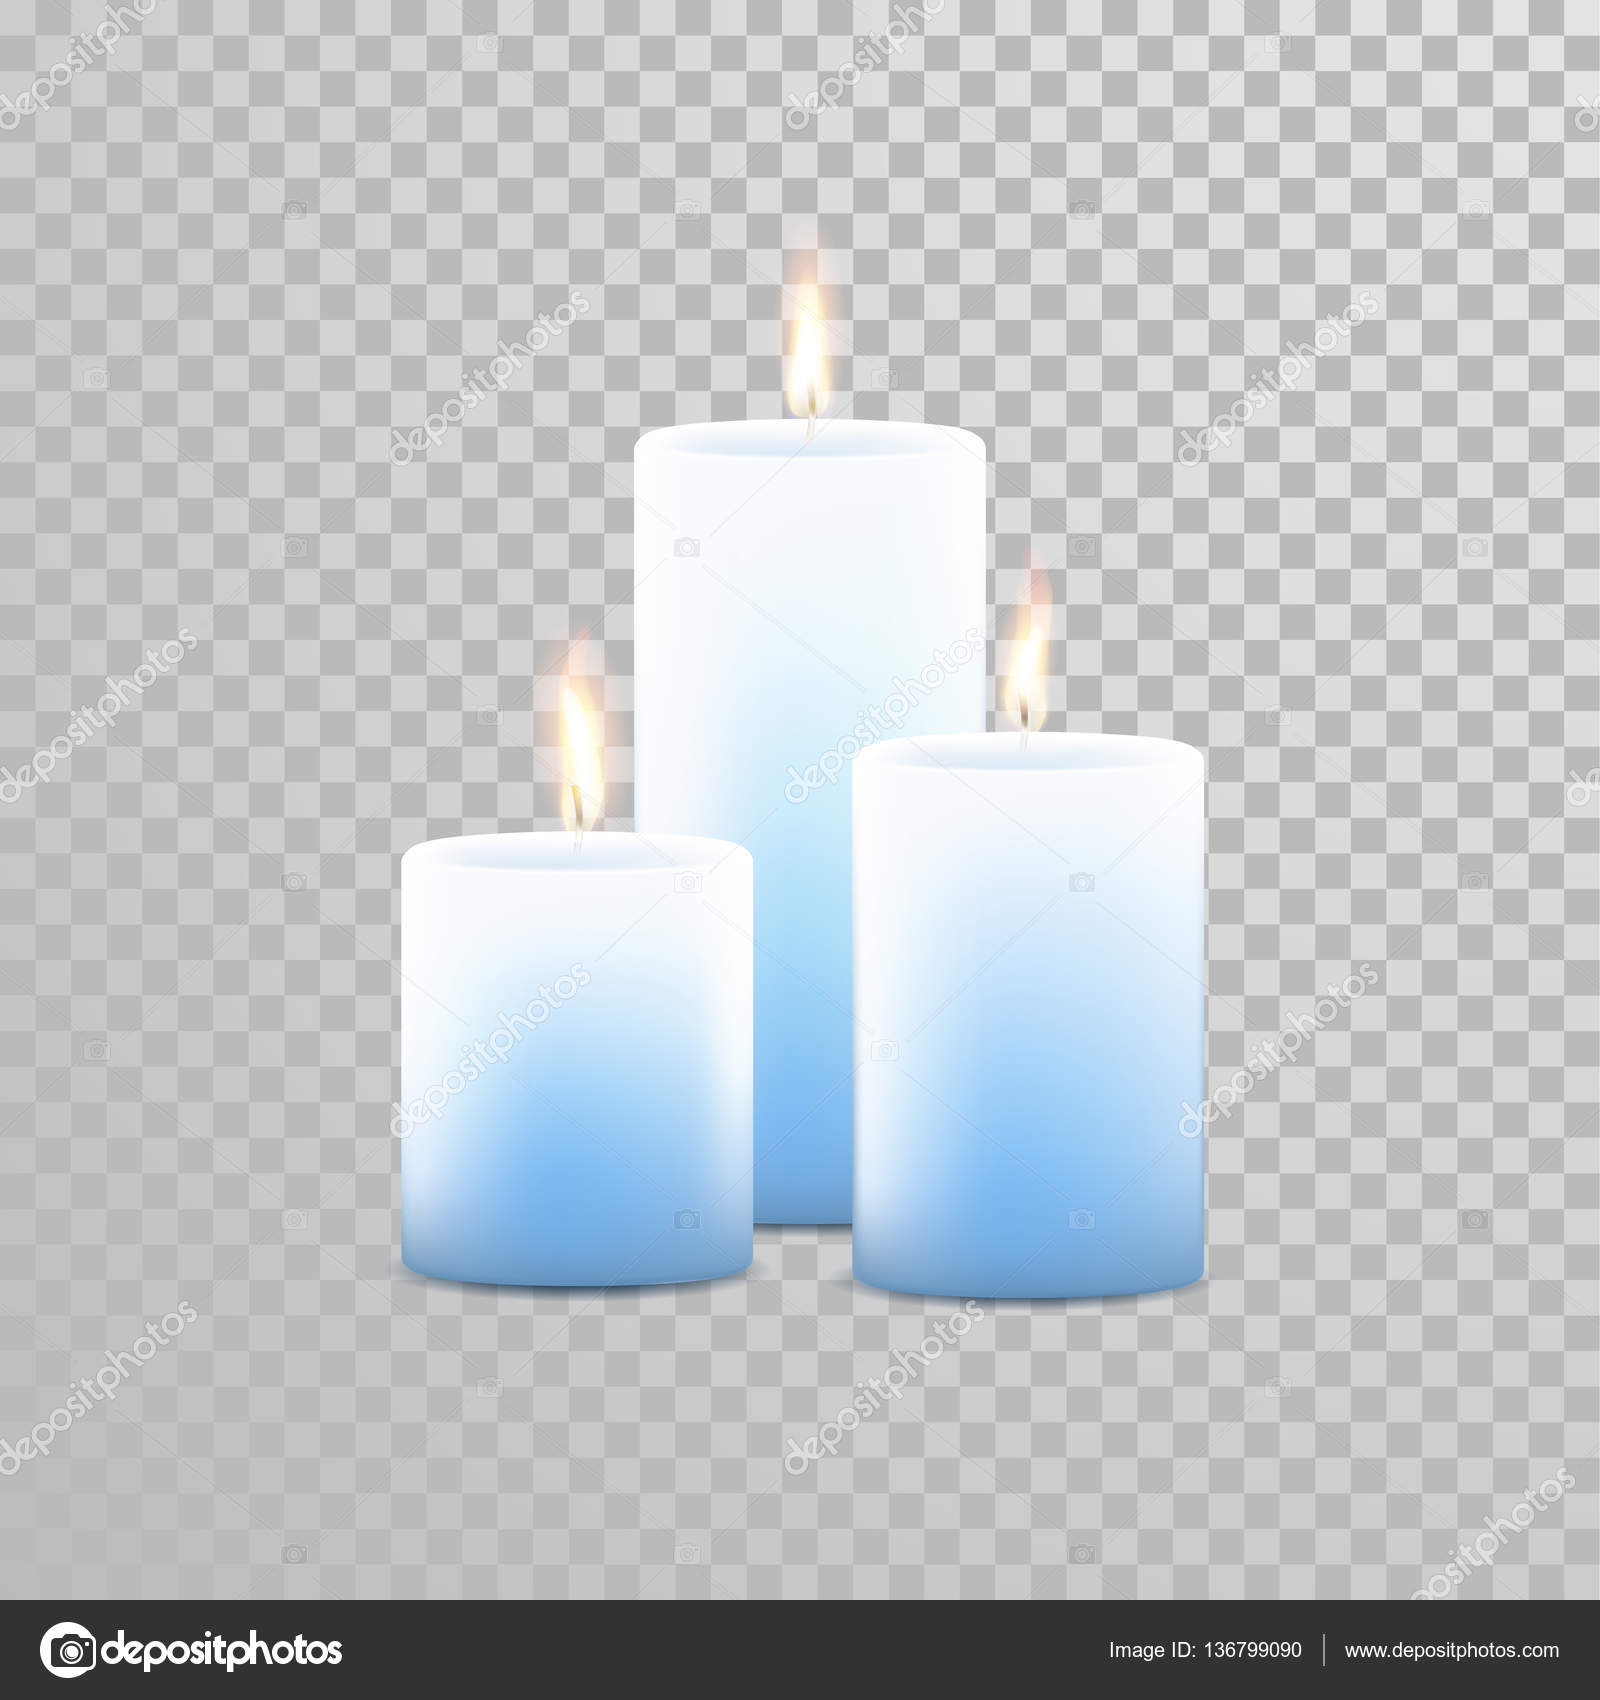 Candles. Fire Animation on Transparent Background — Stock Vector ... for Blue Candle White Background  61obs